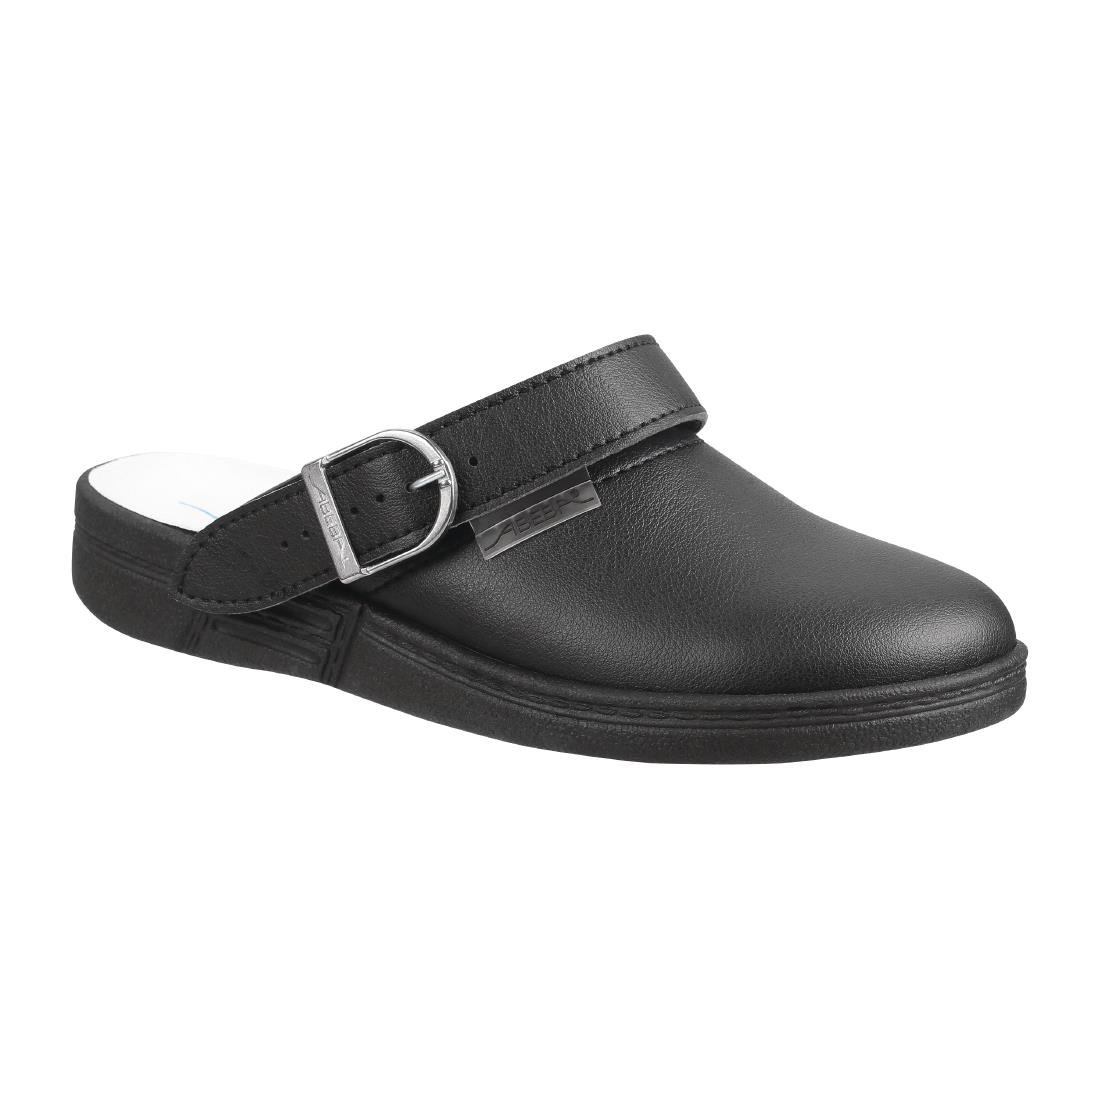 Image of Abeba Microfibre Clogs Black Size 36